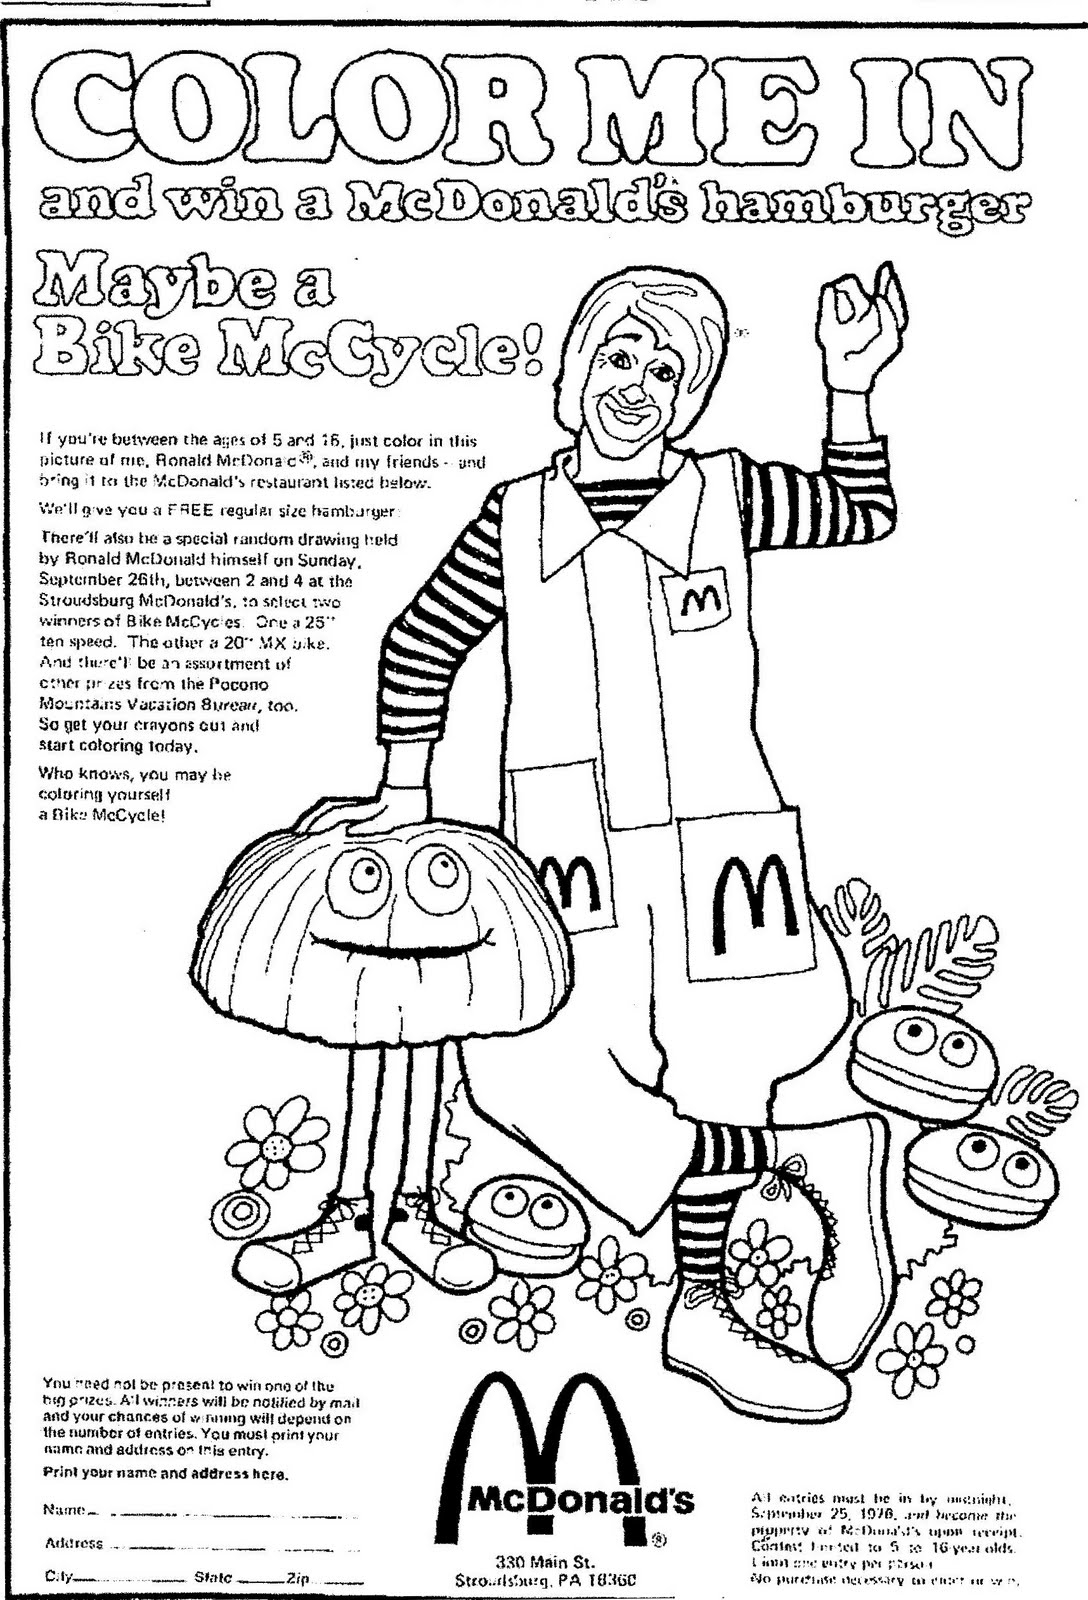 23 Mcdonalds Coloring Pages Images Free Coloring Pages Part 3